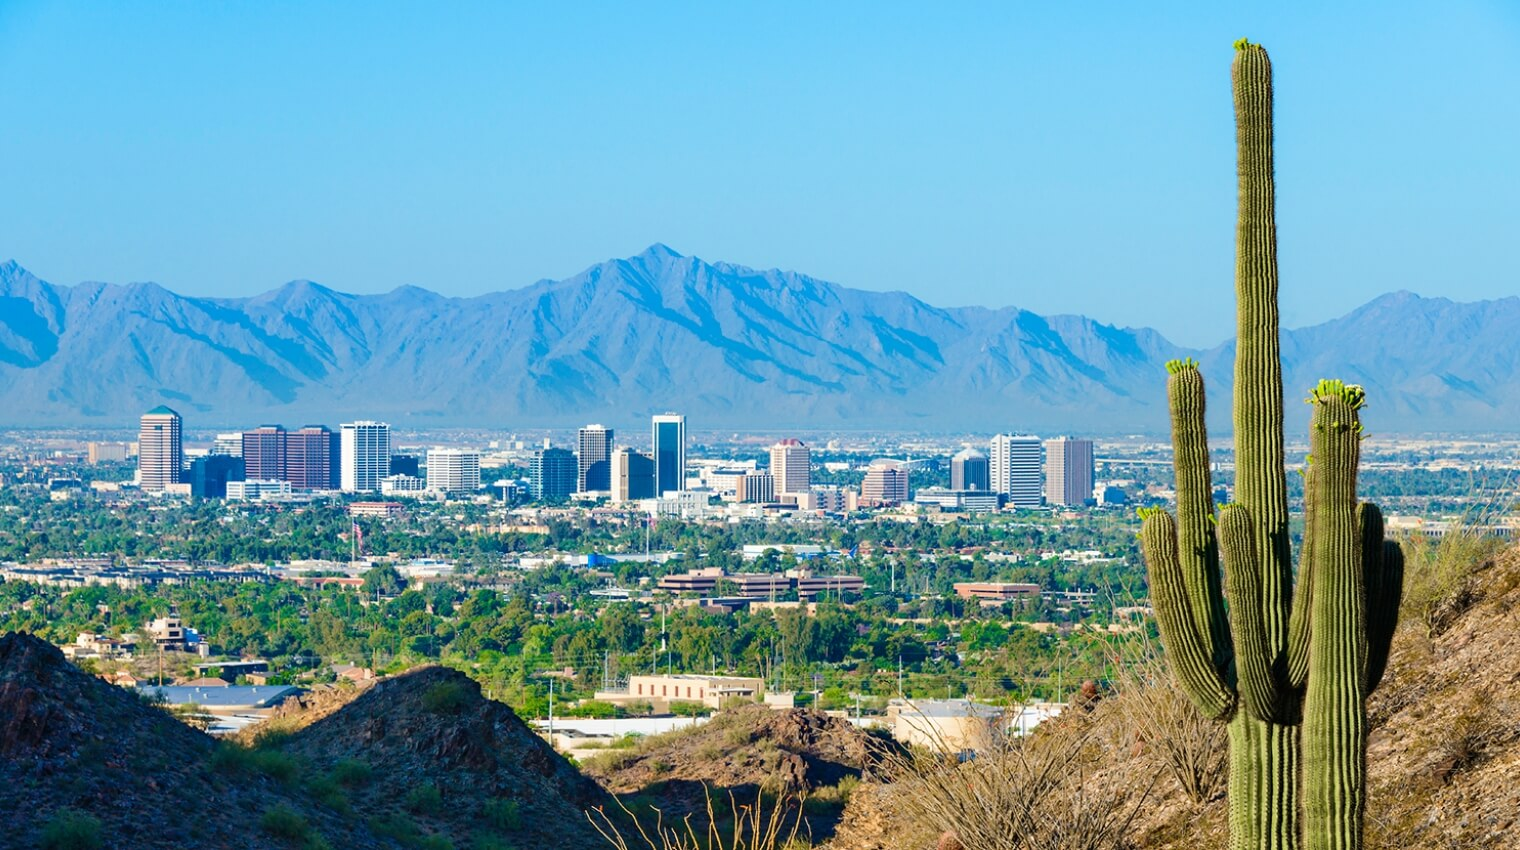 Top 10 Things To Do in Phoenix